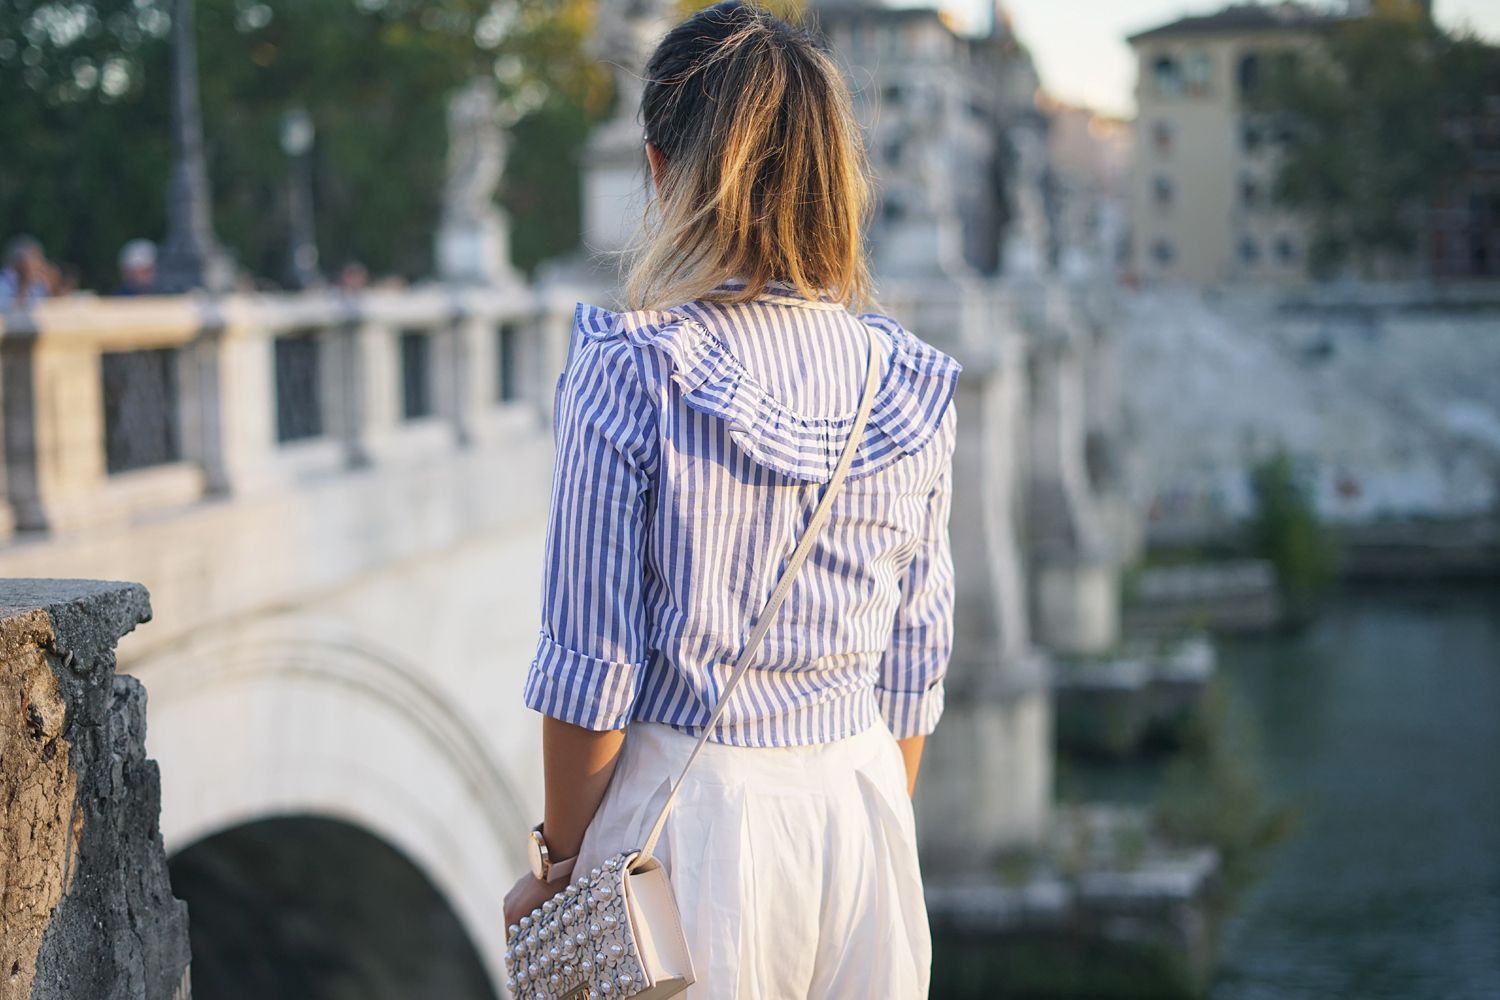 09rome-pontesantangelo-bridge-travel-ootd